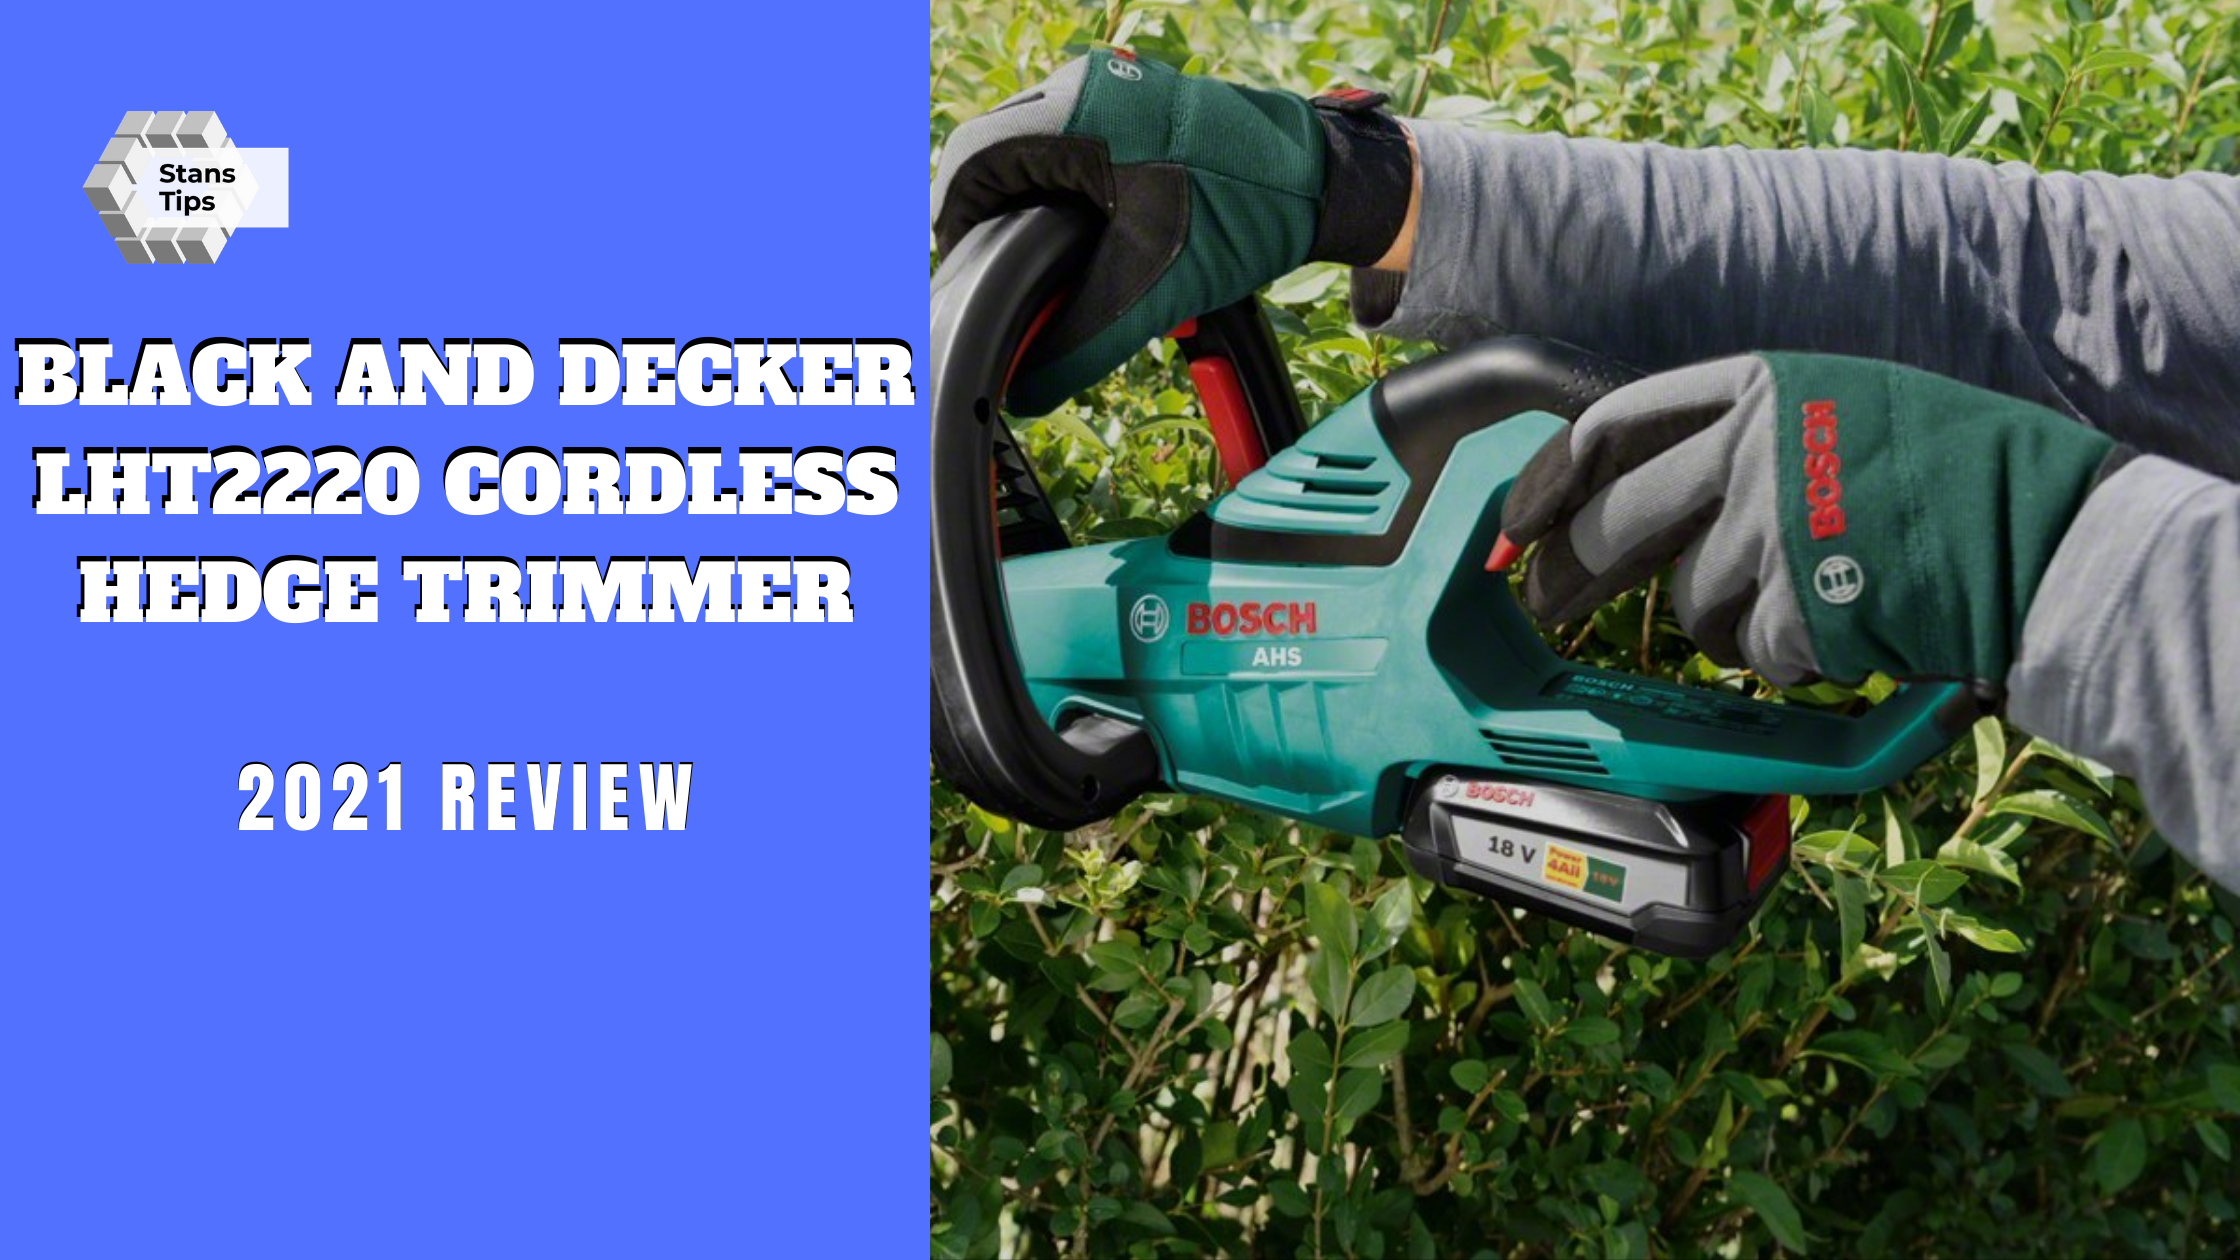 Black and decker lht2220 cordless hedge trimmer review